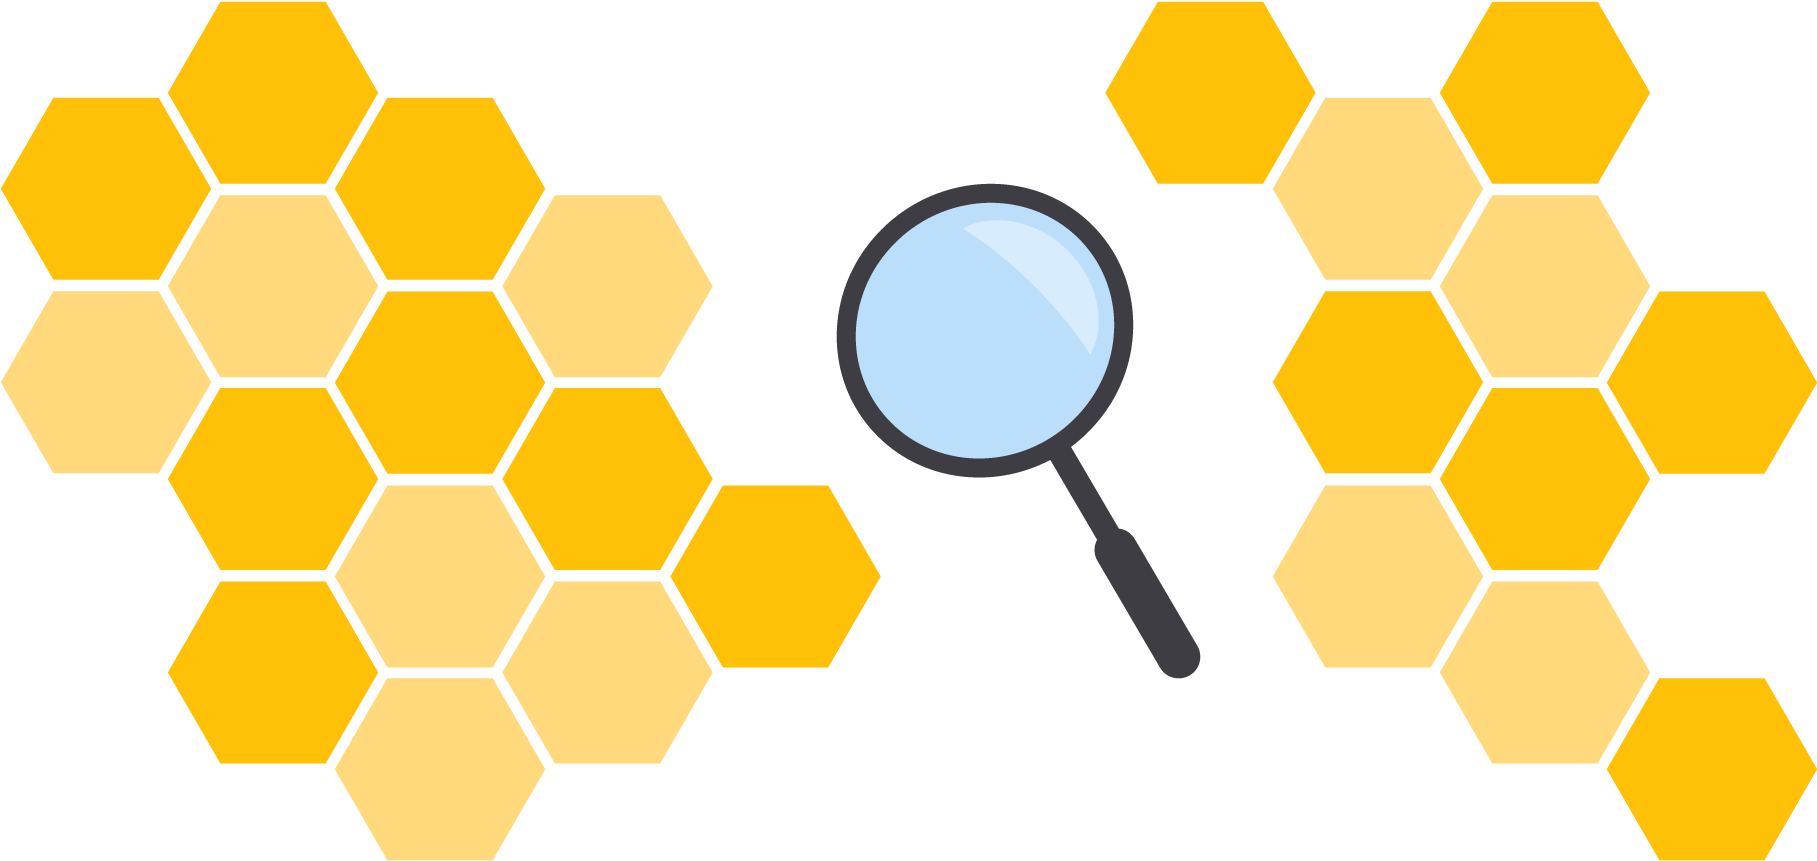 hive-png-10